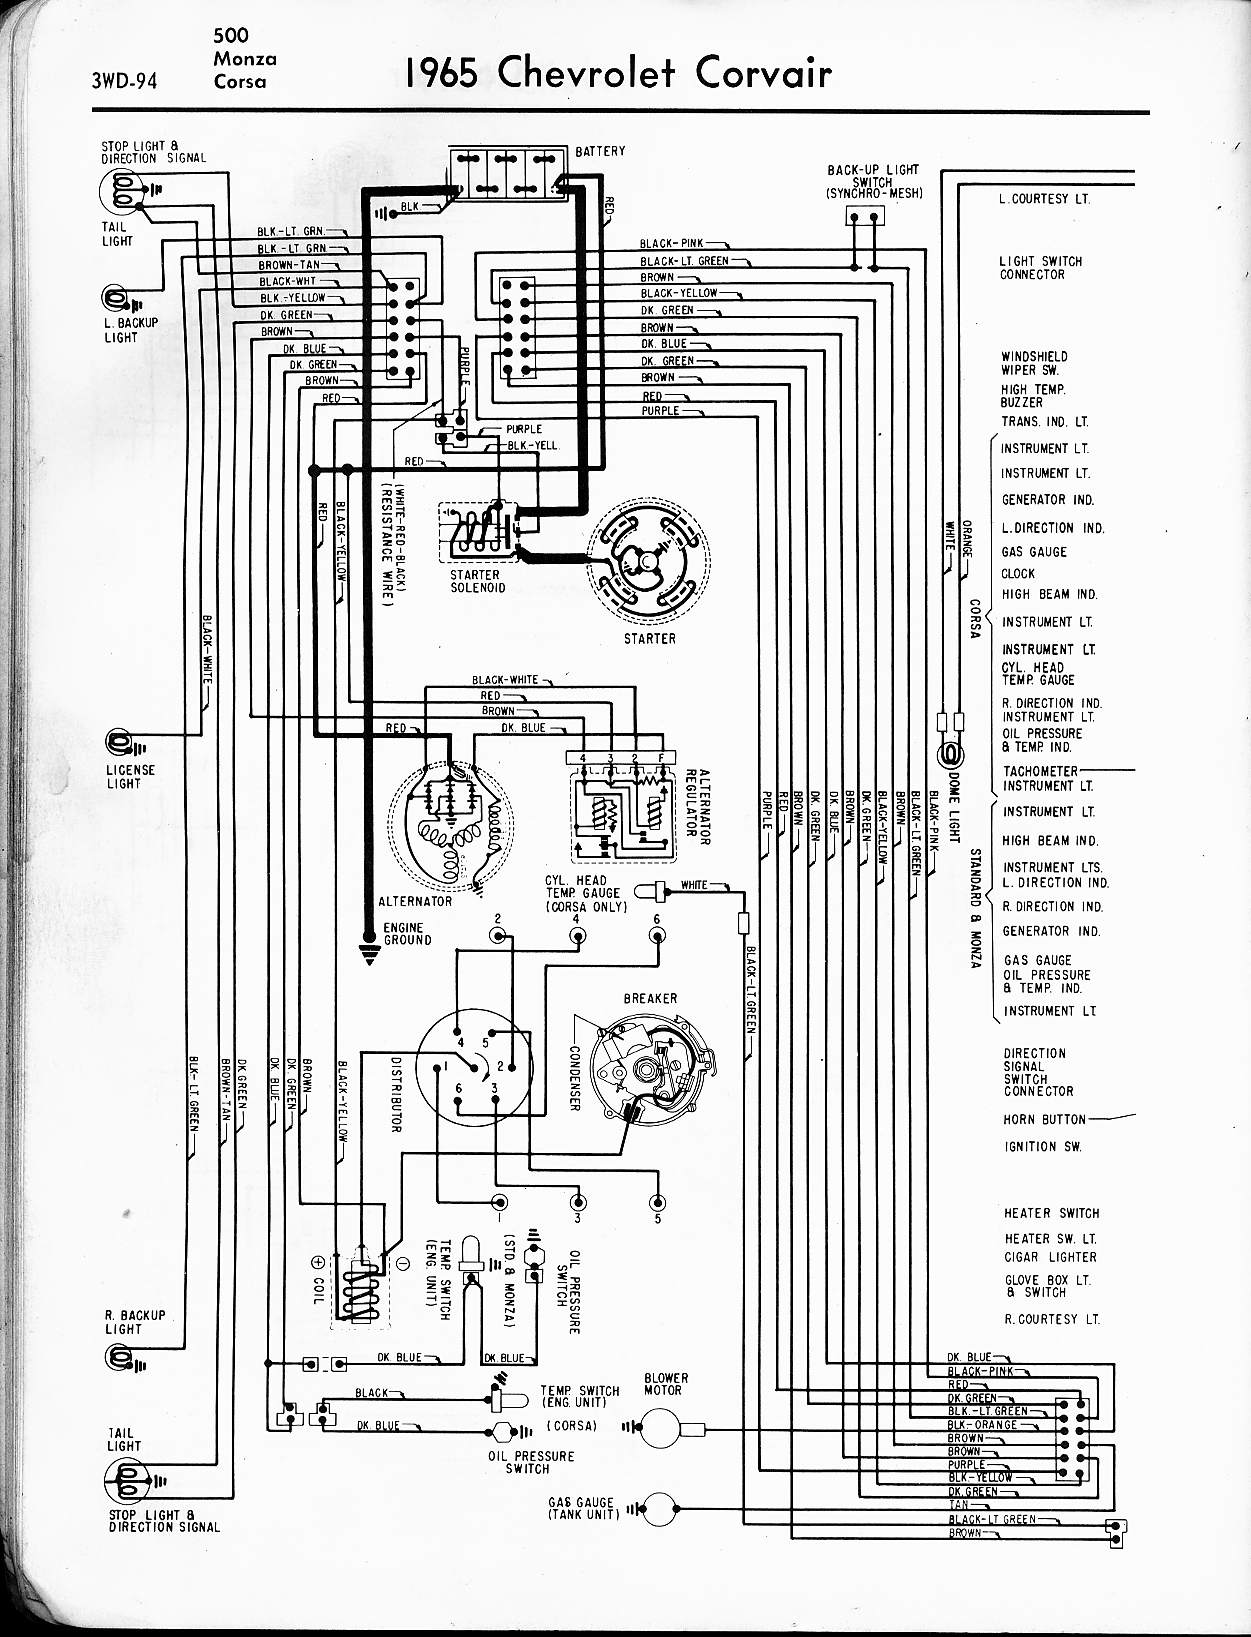 [wrg-1669] 65 impala ignition wiring diagram 1963 corvair wiring diagram